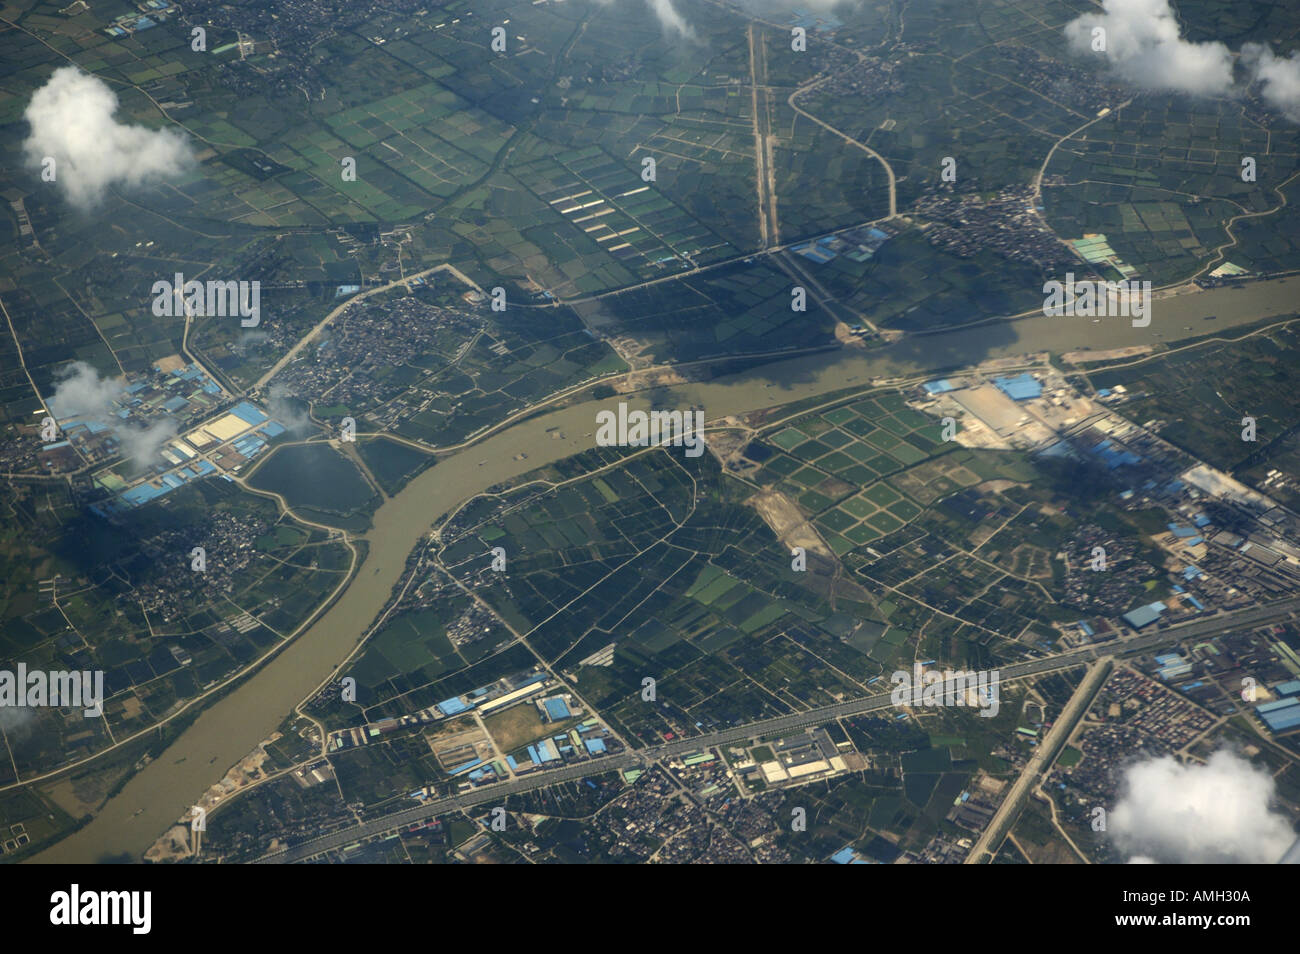 City of Shenzhen as seen from an arriving airplane, Guangdong, China. Stock Photo